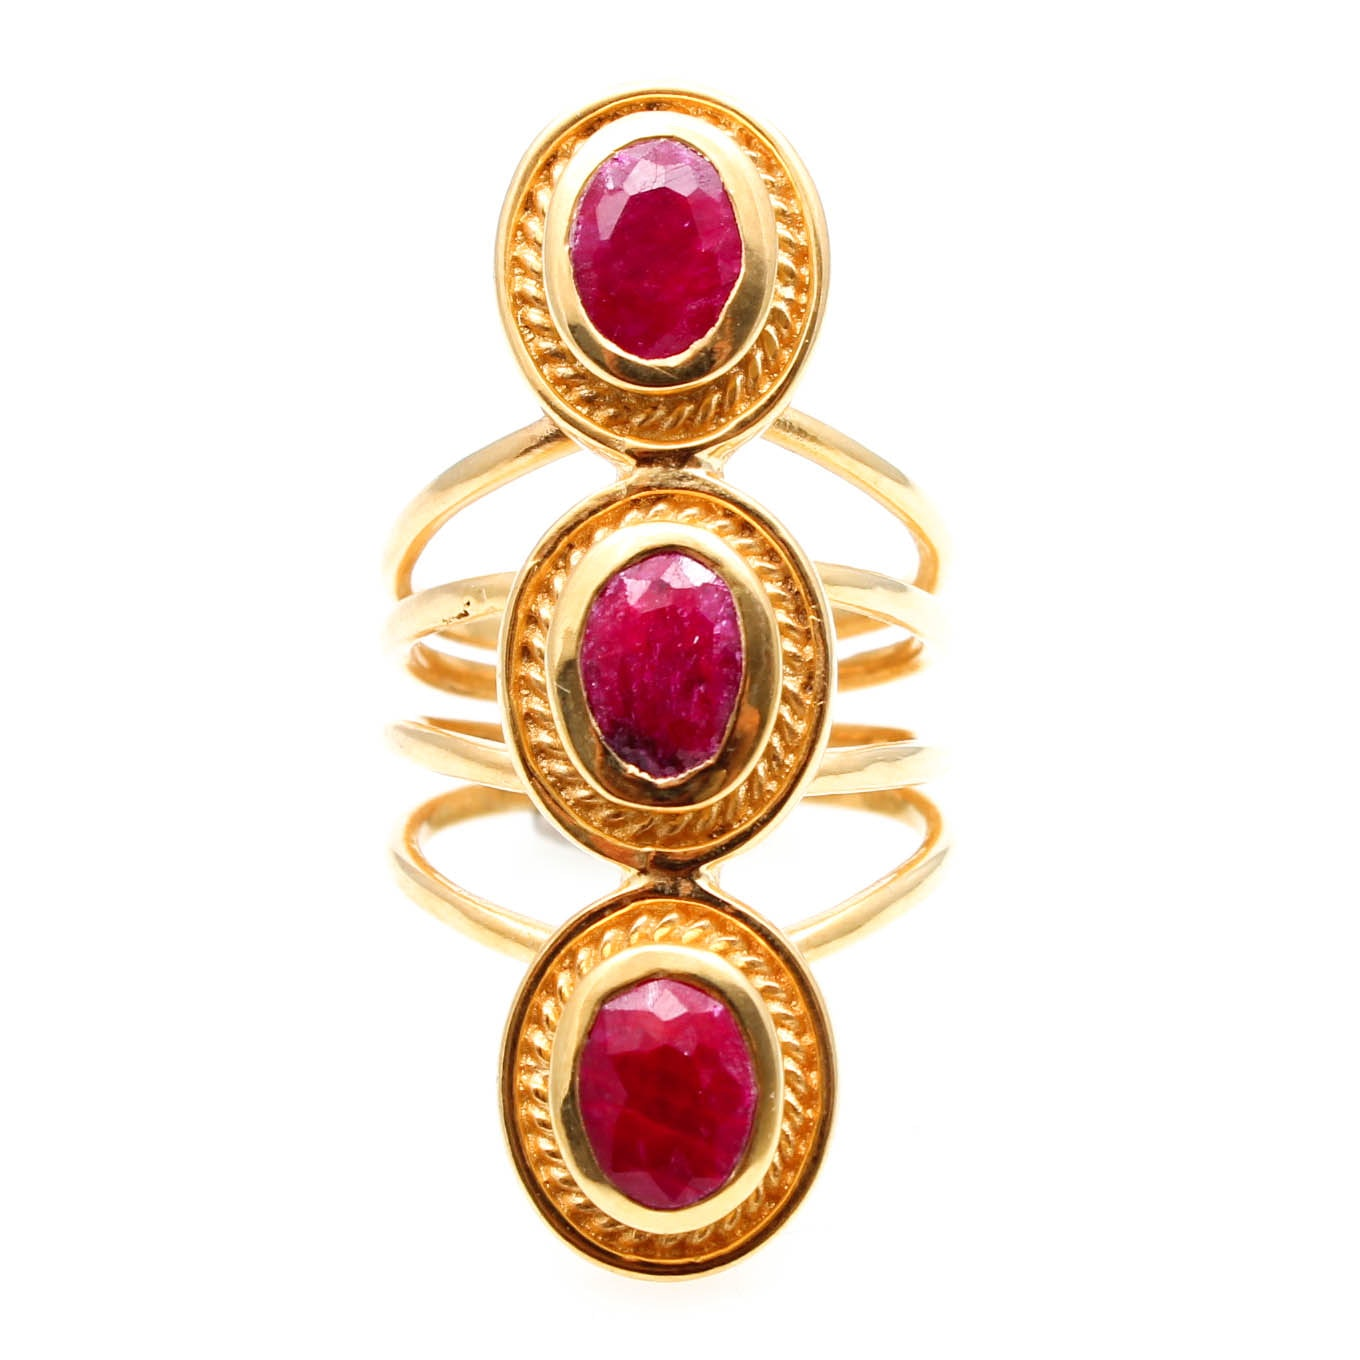 Gold Tone Opaque Ruby Statement Ring